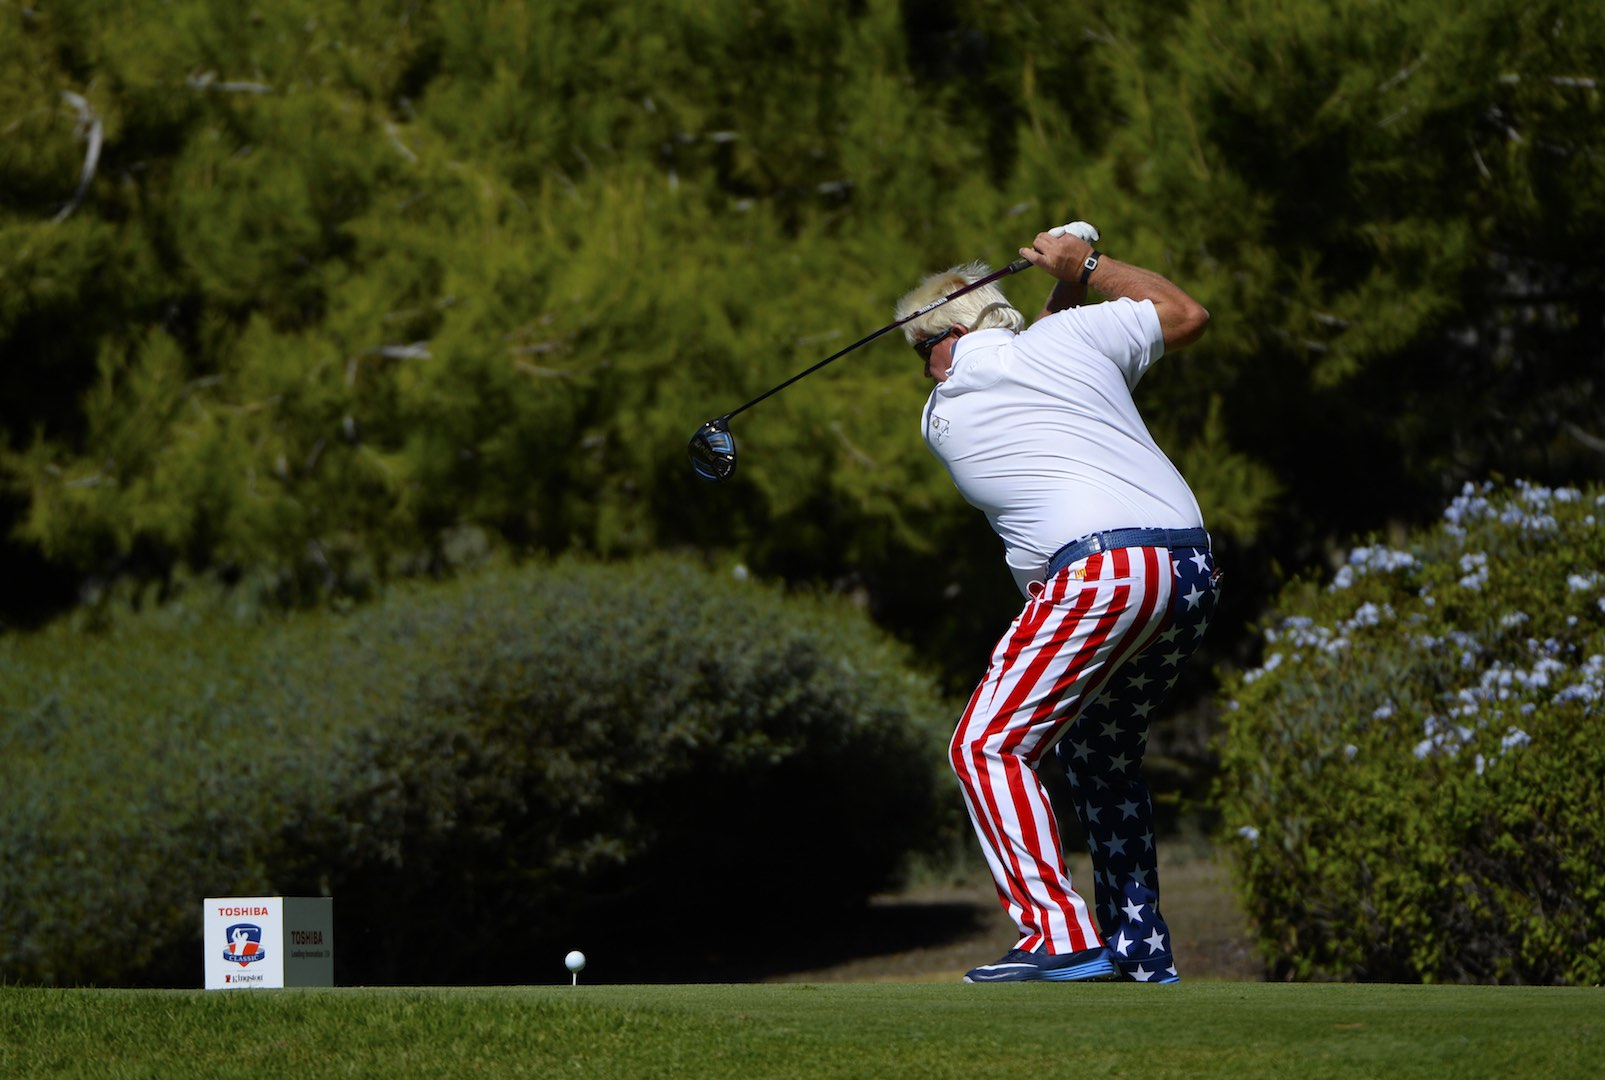 John Daly reveals revolutionary Vertical Groove driver